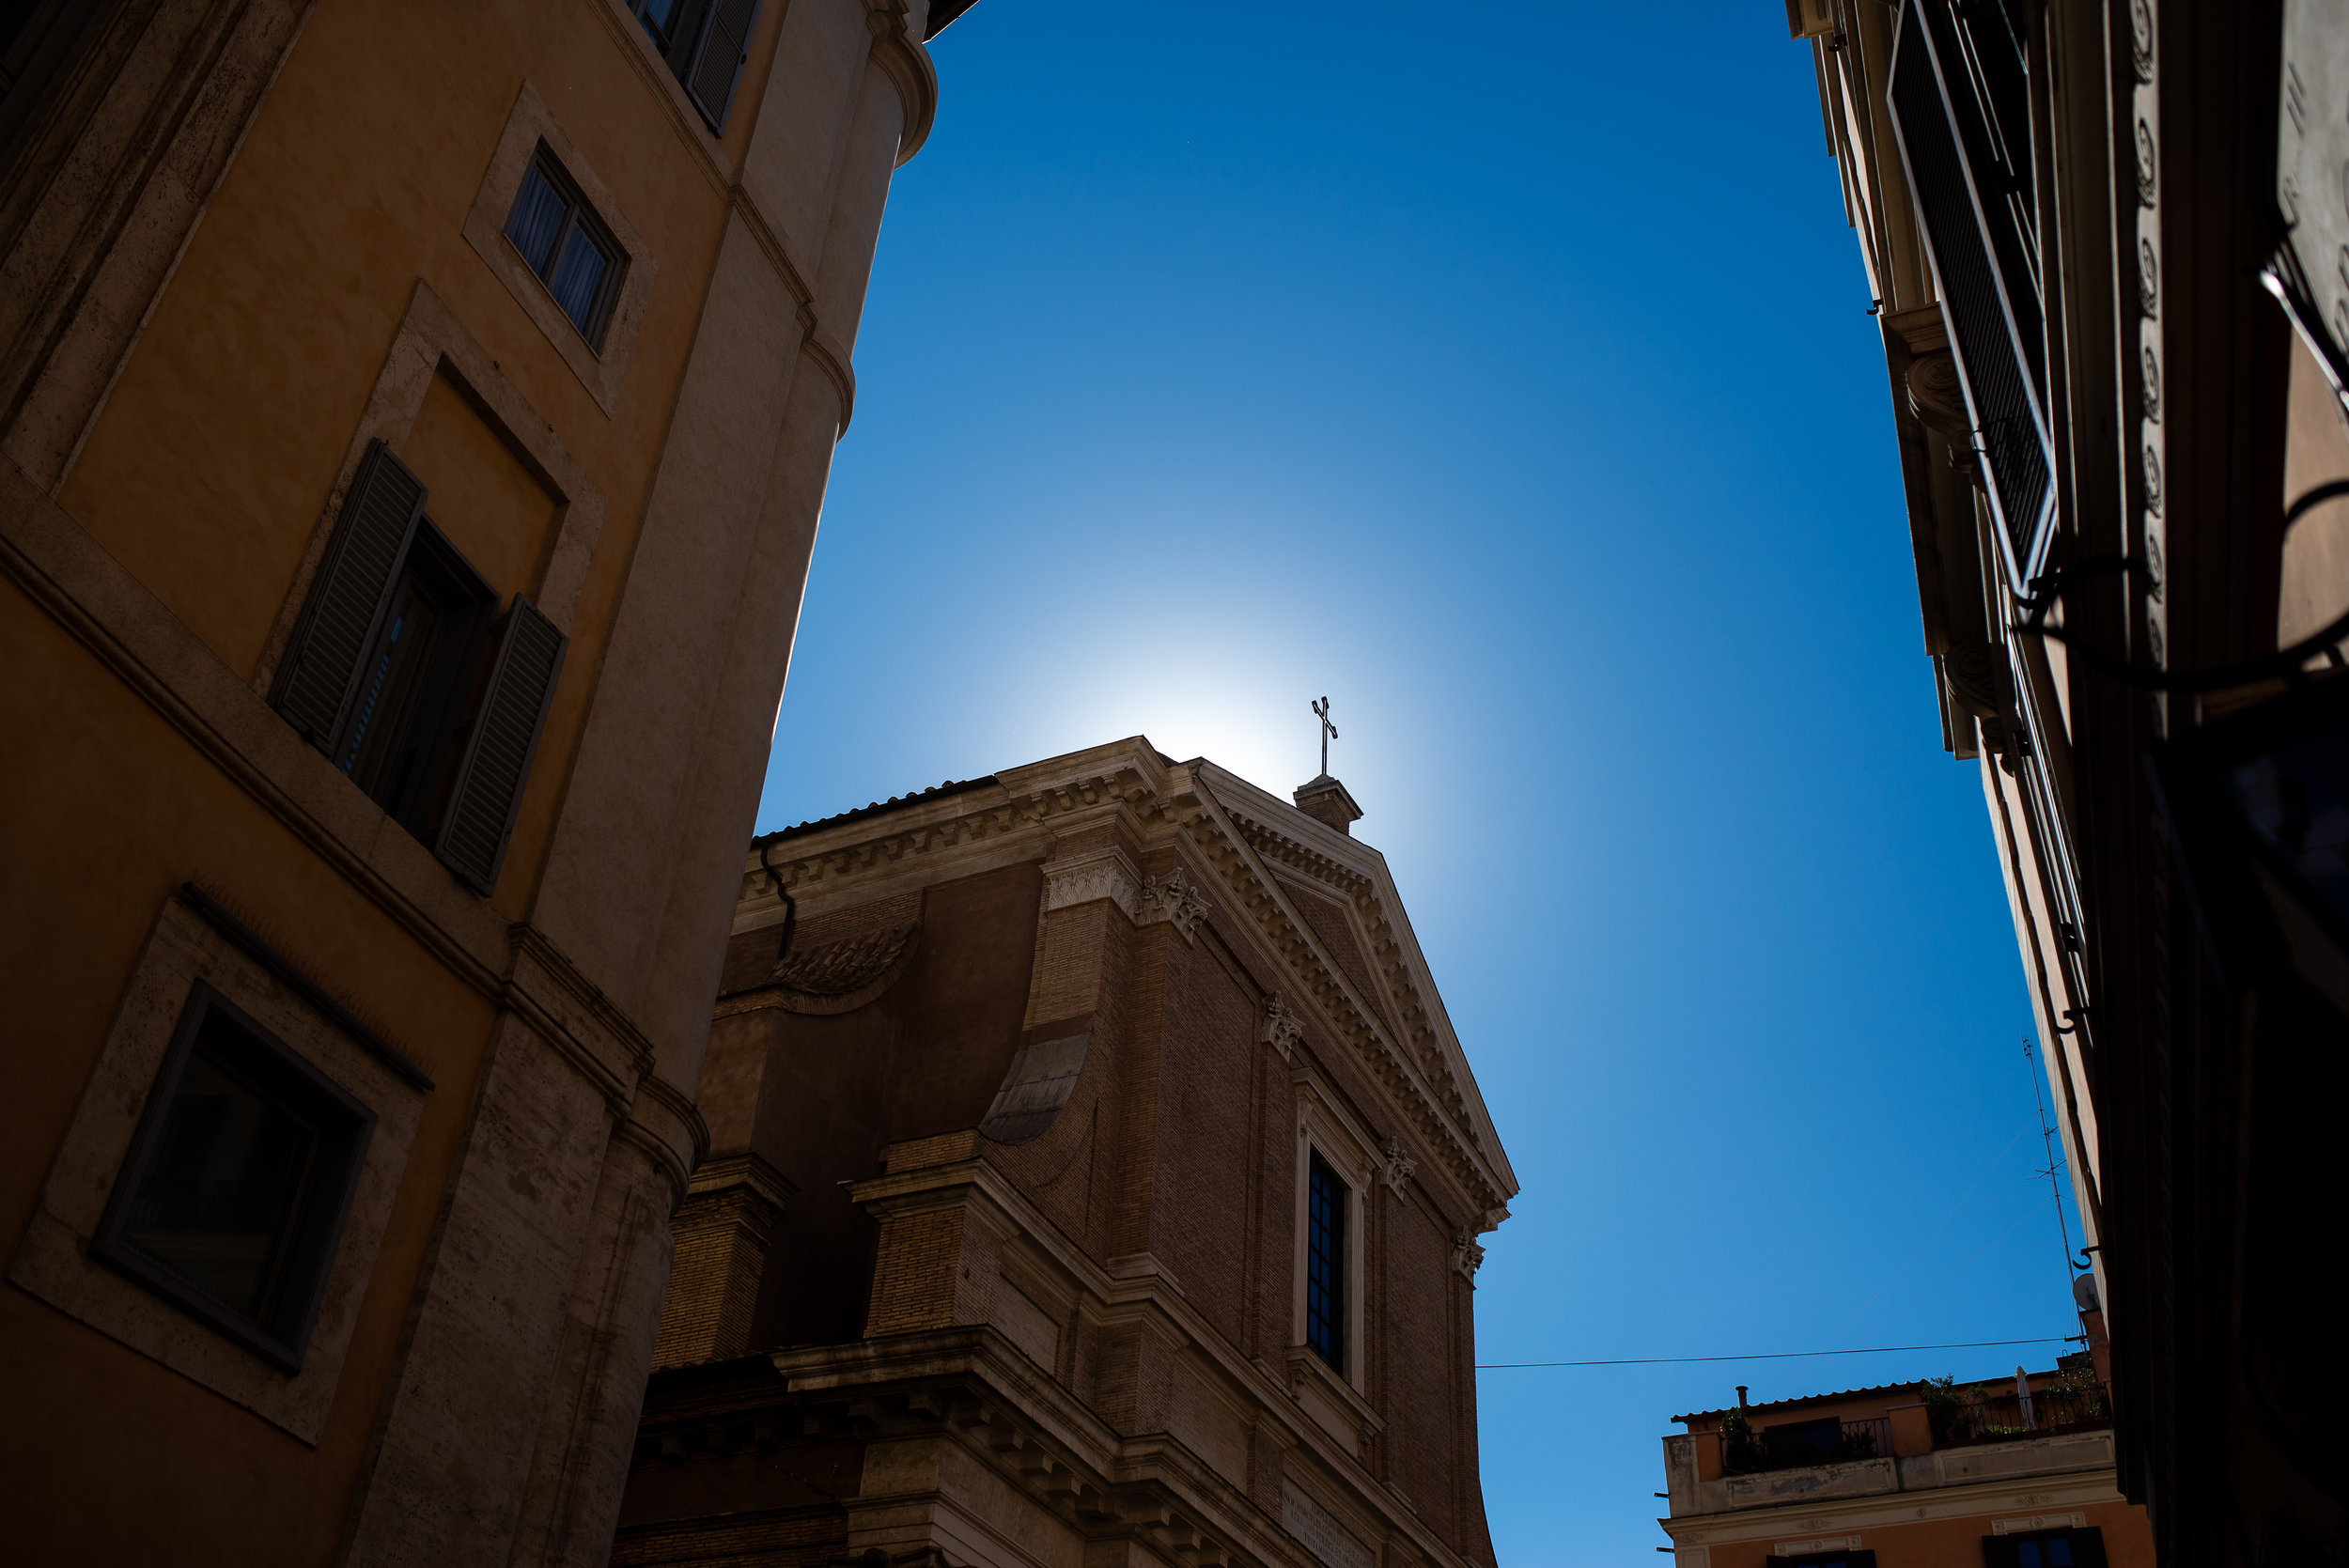 Rome-www.danielrobinsonphotography.co.uk-4.jpg